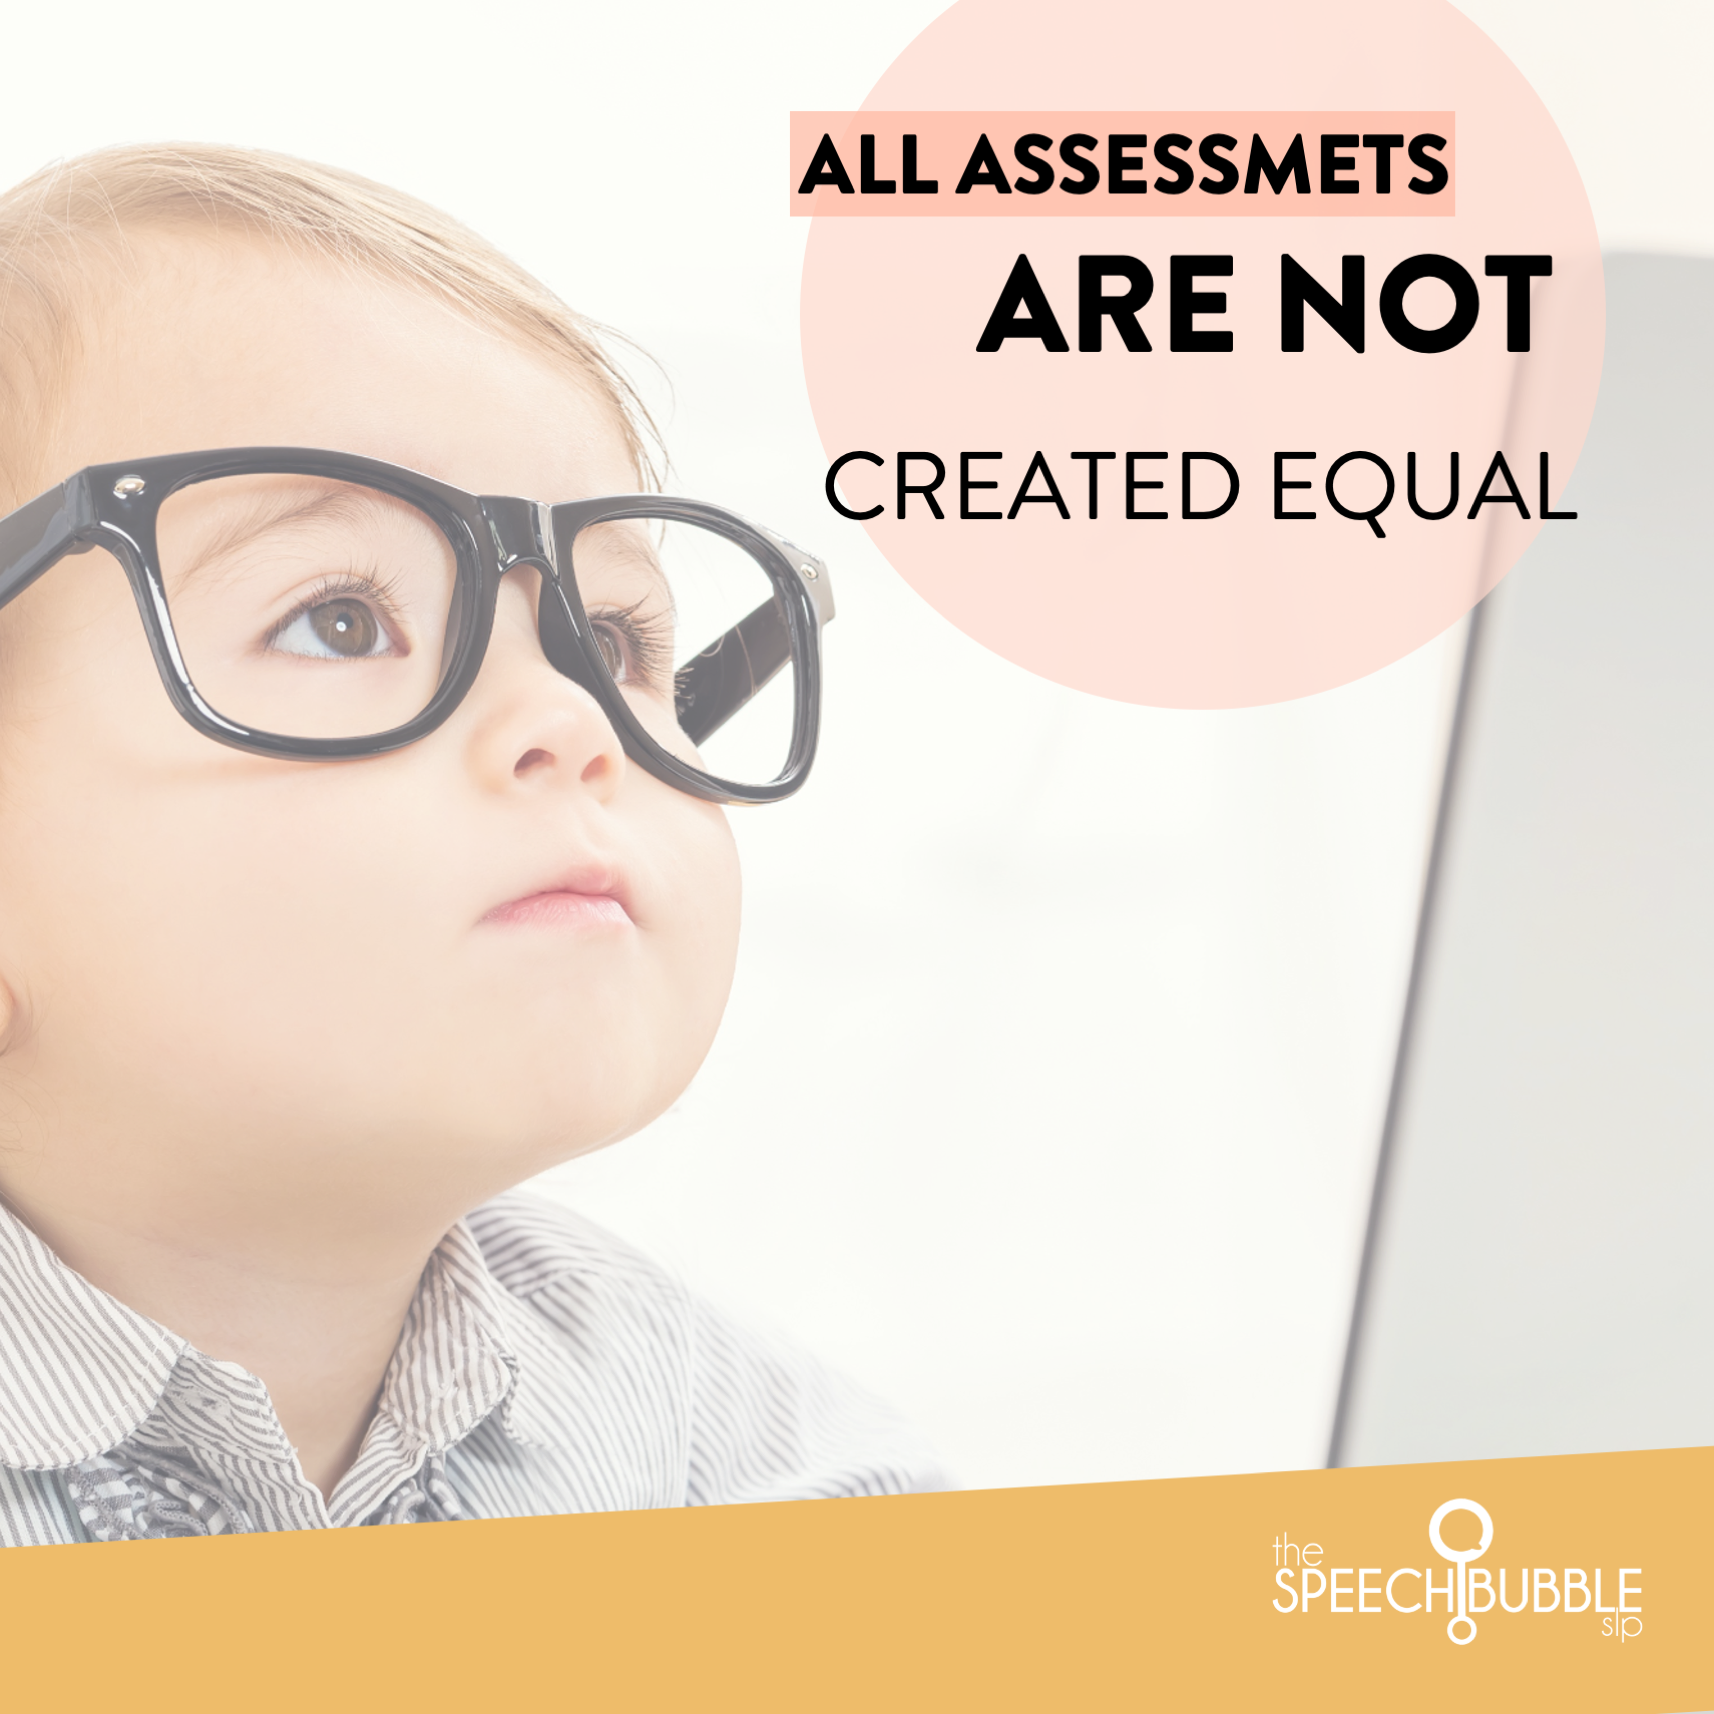 All Assessments Are NOT Created Equal